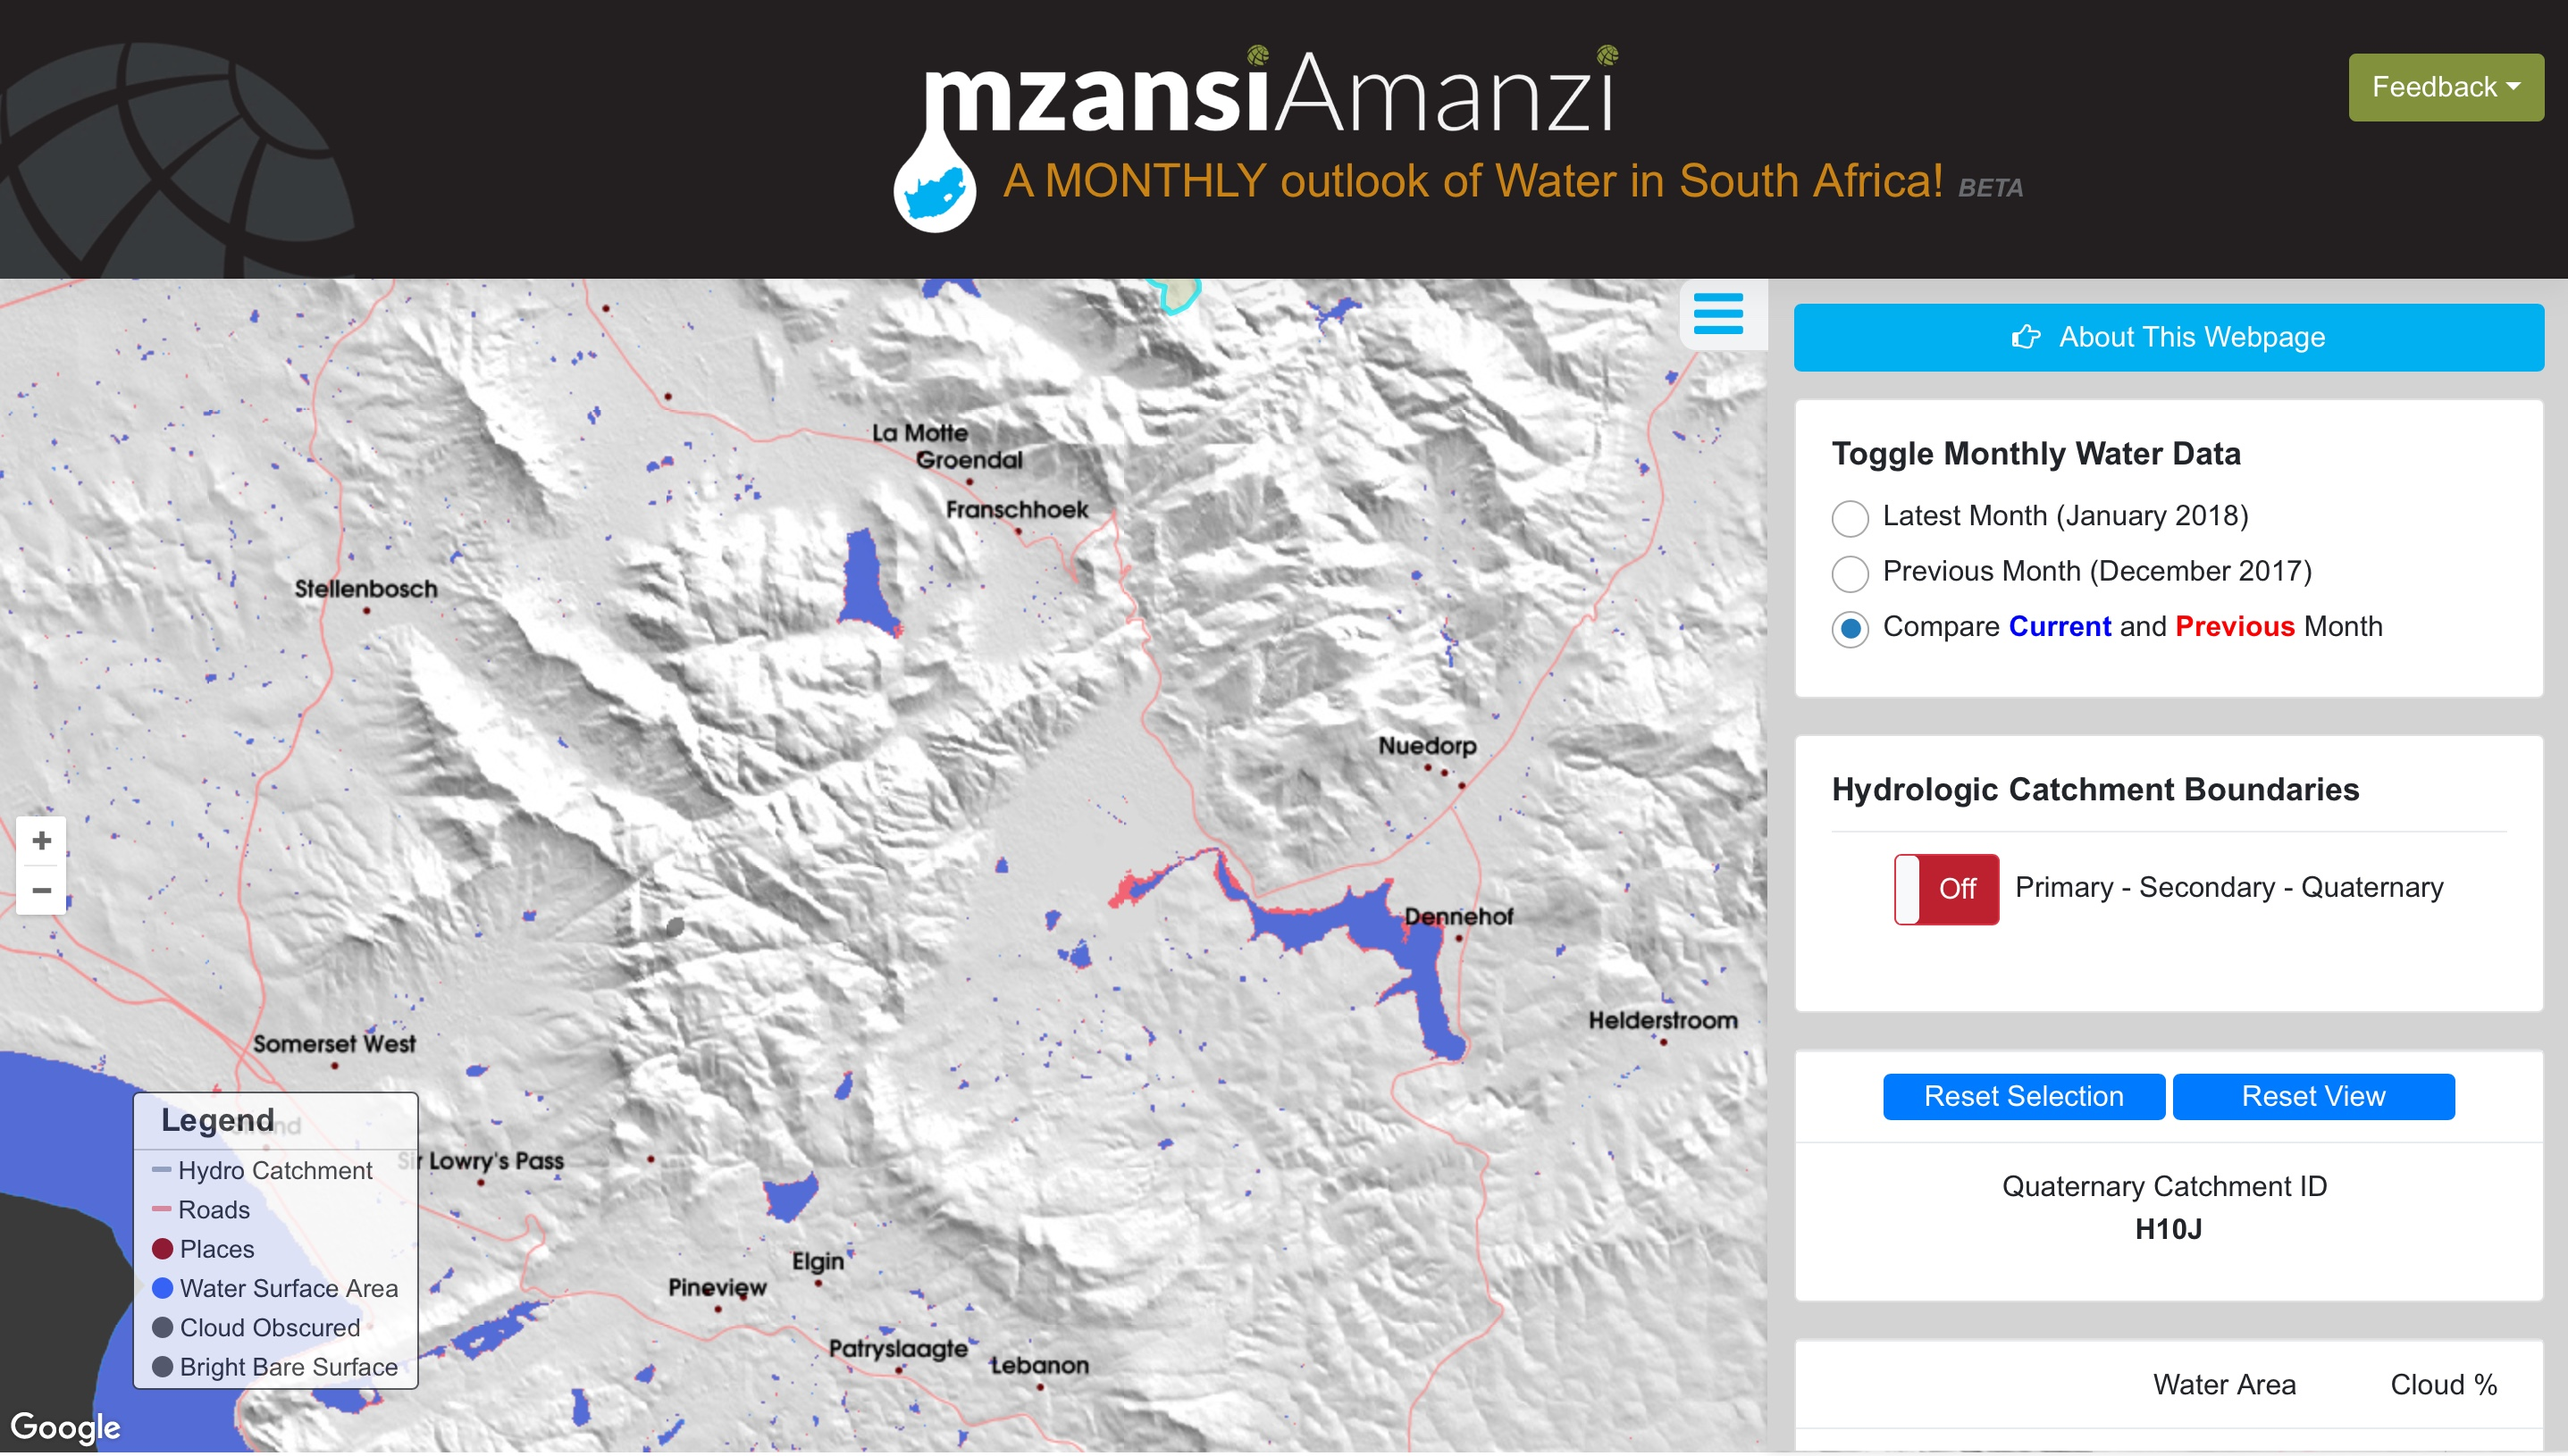 Fig. 1: The Mzansi Amanzi monthly water monitoring service website.